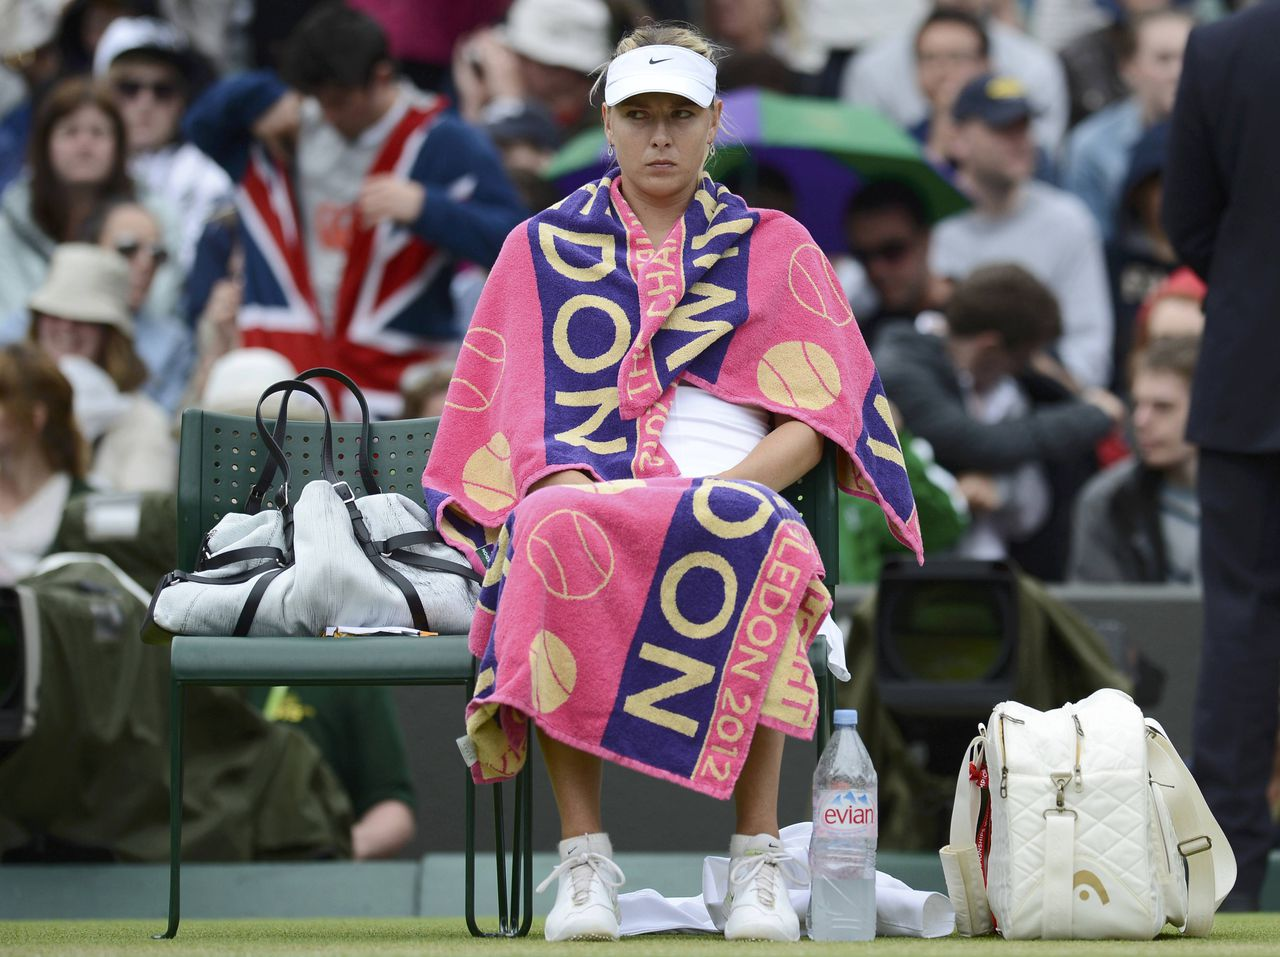 Maria Sharapova of Russia sits in her seat during a break in her women's singles tennis match against Sabine Lisicki of Germany at the Wimbledon tennis championships in London July 2, 2012. REUTERS/Dylan Martinez (BRITAIN - Tags: SPORT TENNIS)